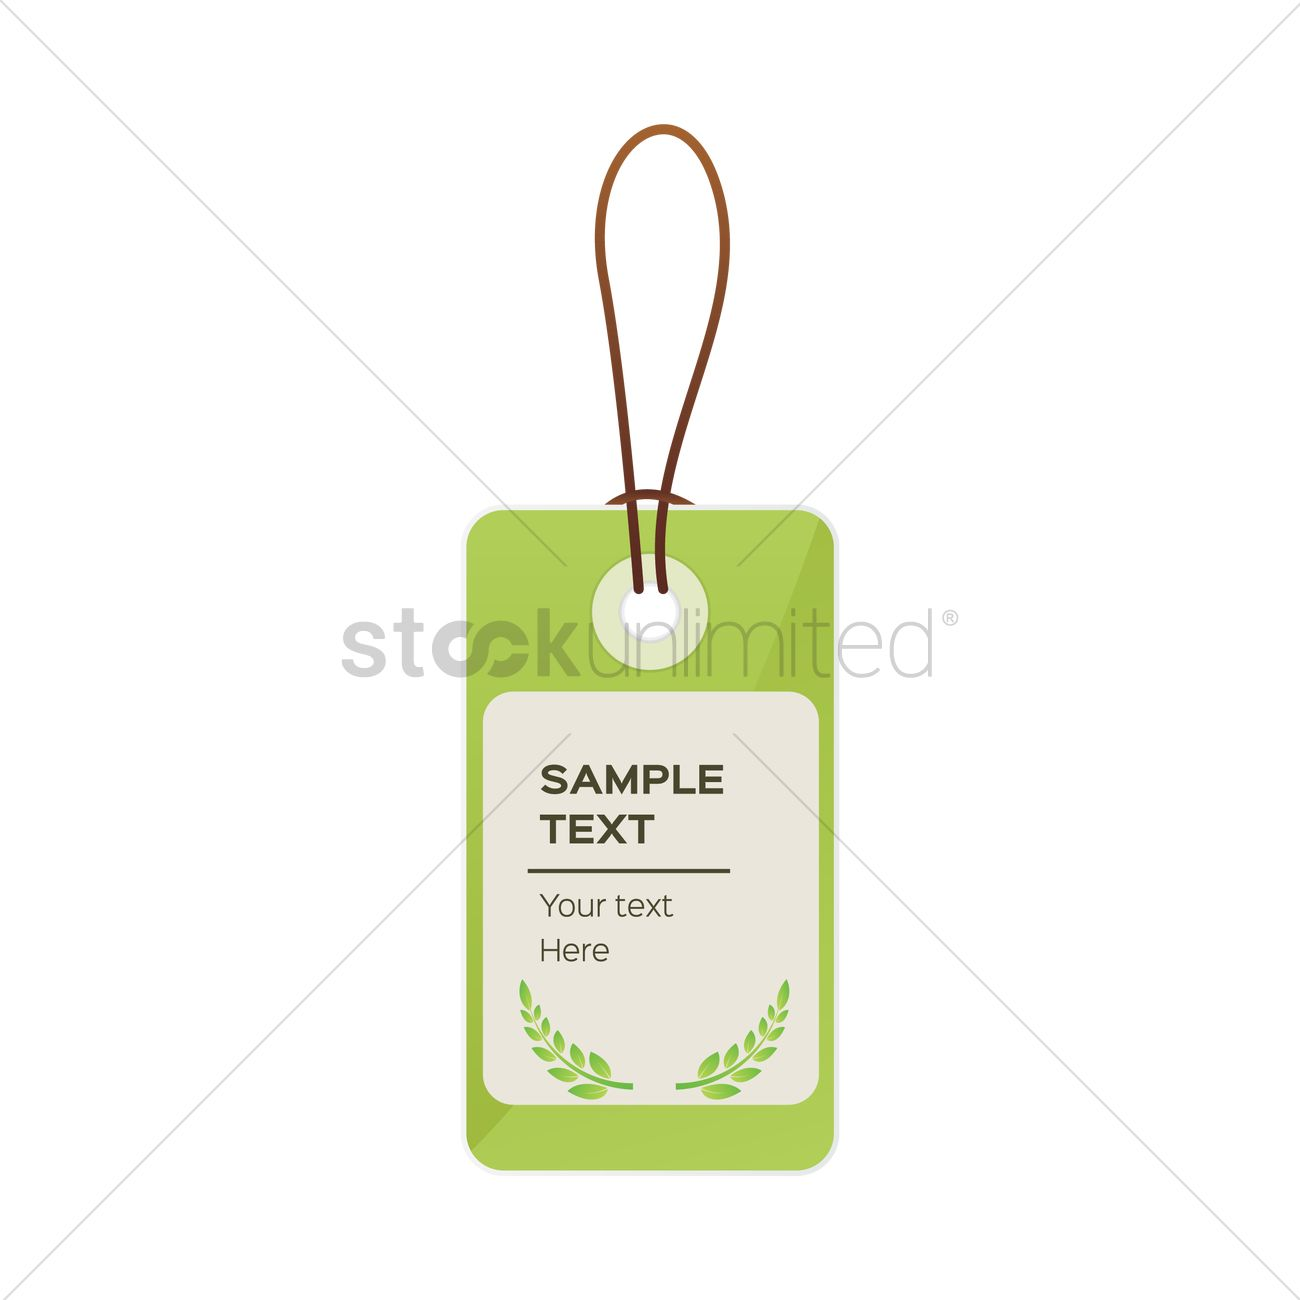 Product tag design Vector Image - 1993818 | StockUnlimited